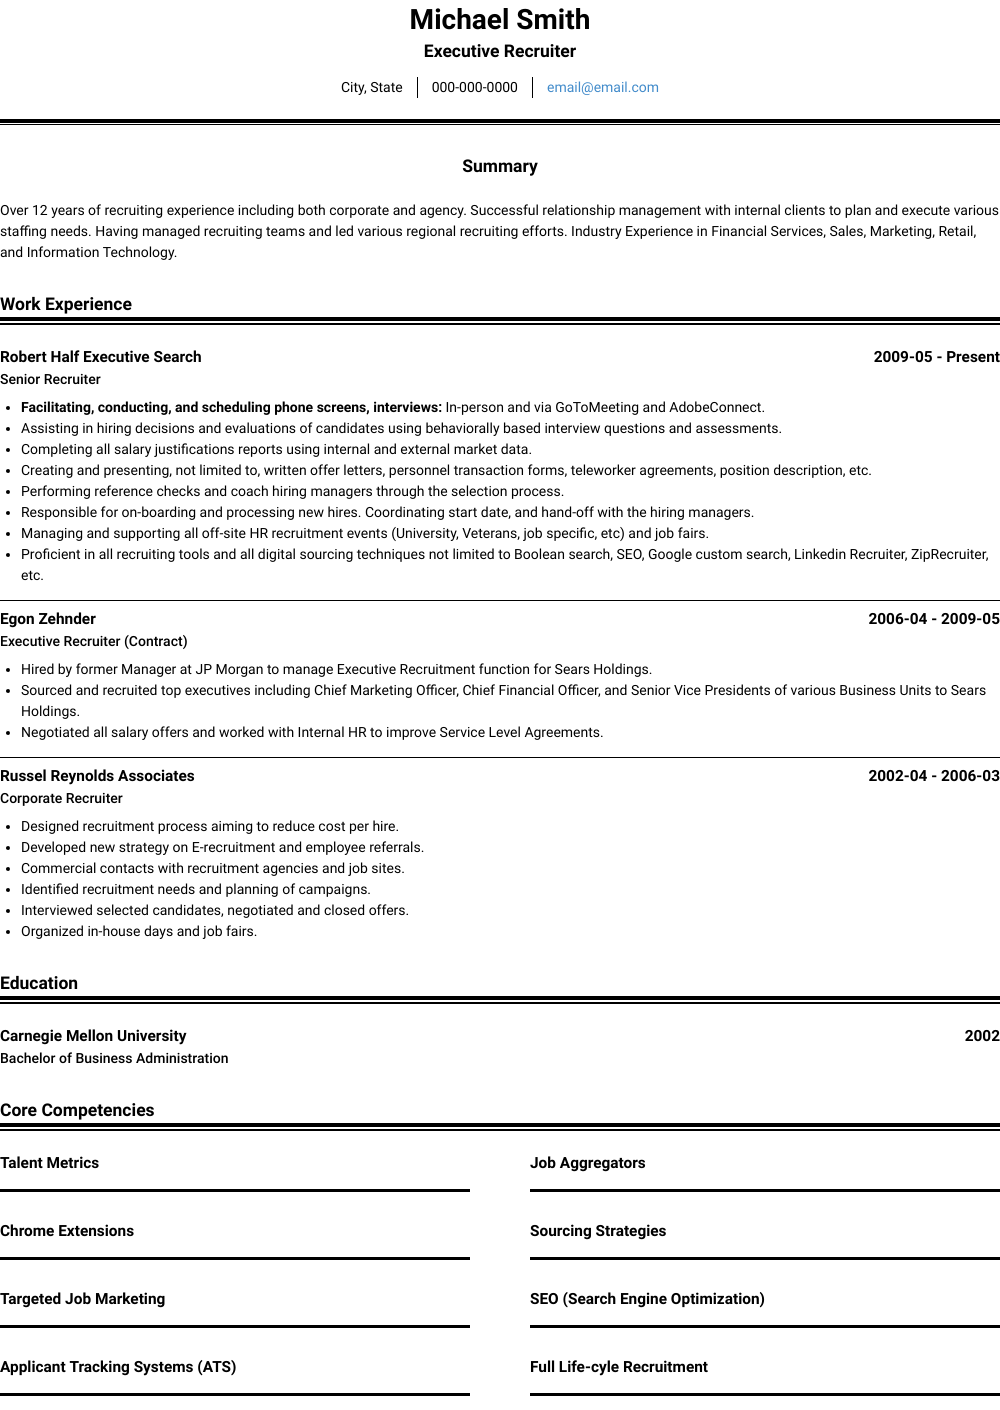 Executive Recruiter Resume Sample and Template